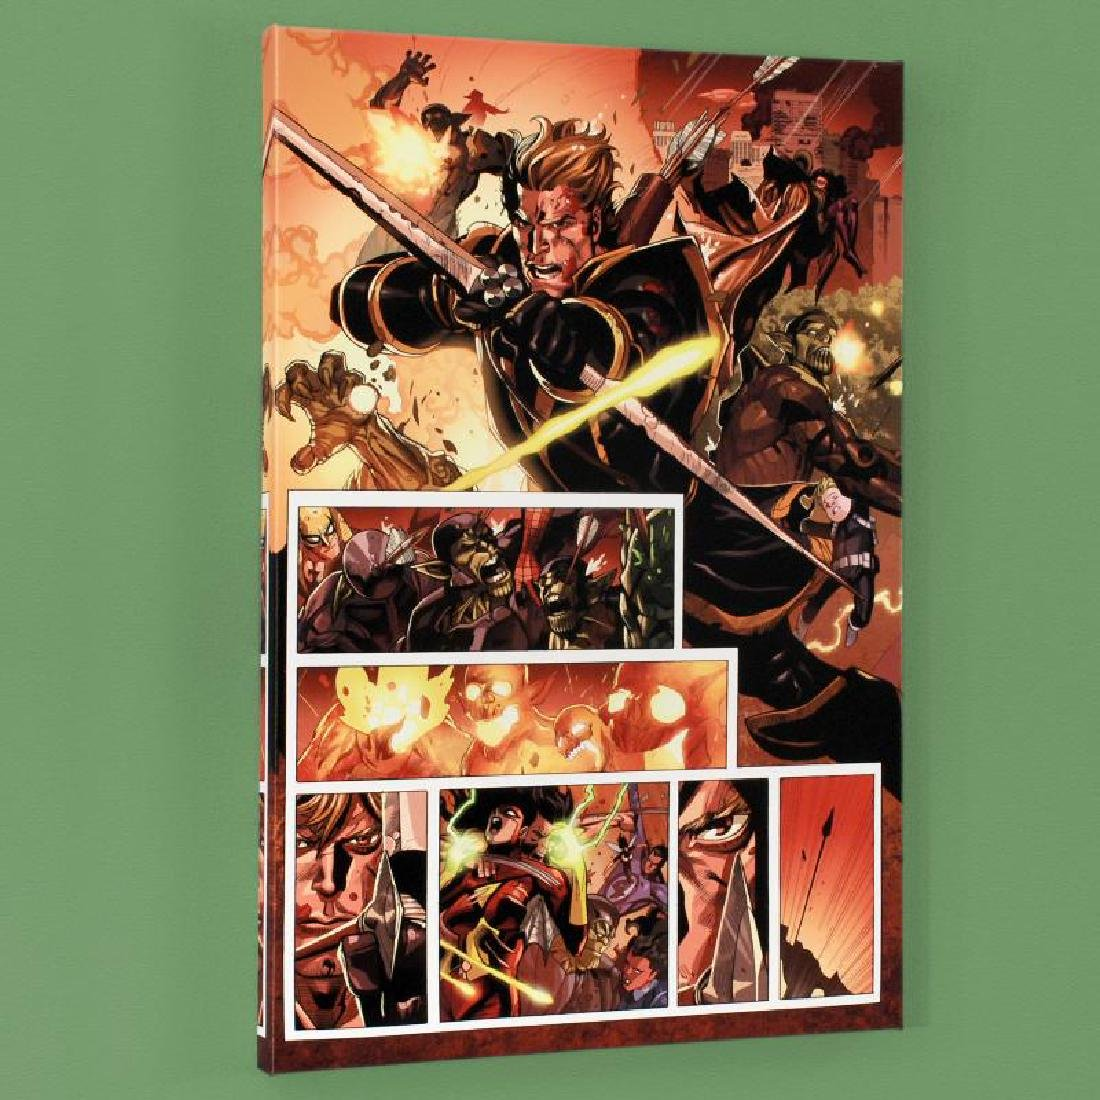 Secret Invasion #7 Limited Edition Giclee on Canvas by